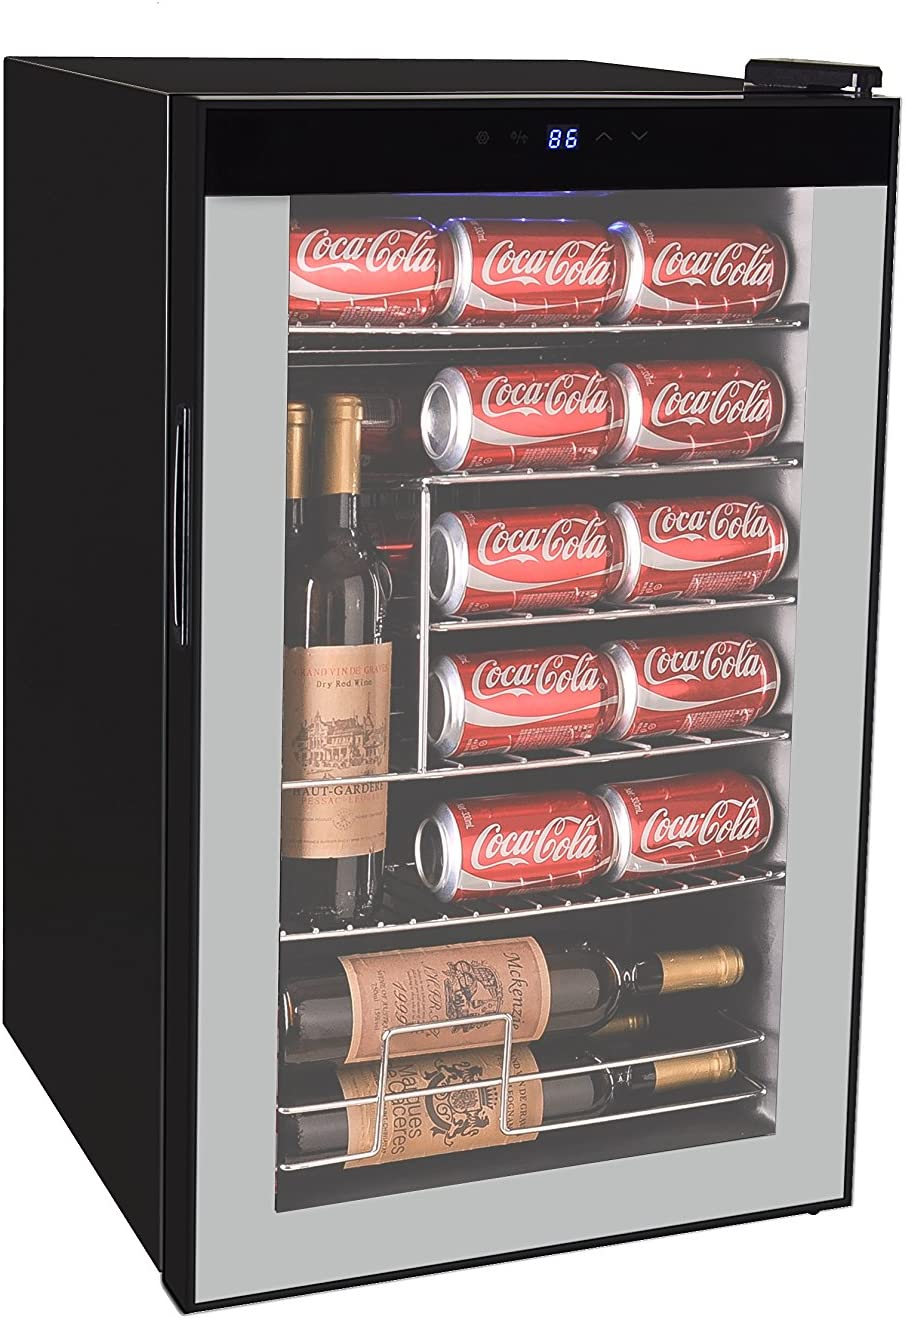 RCA RMIS2434 Beverage Center (101 Cans or 24 Wine Bottle), Black